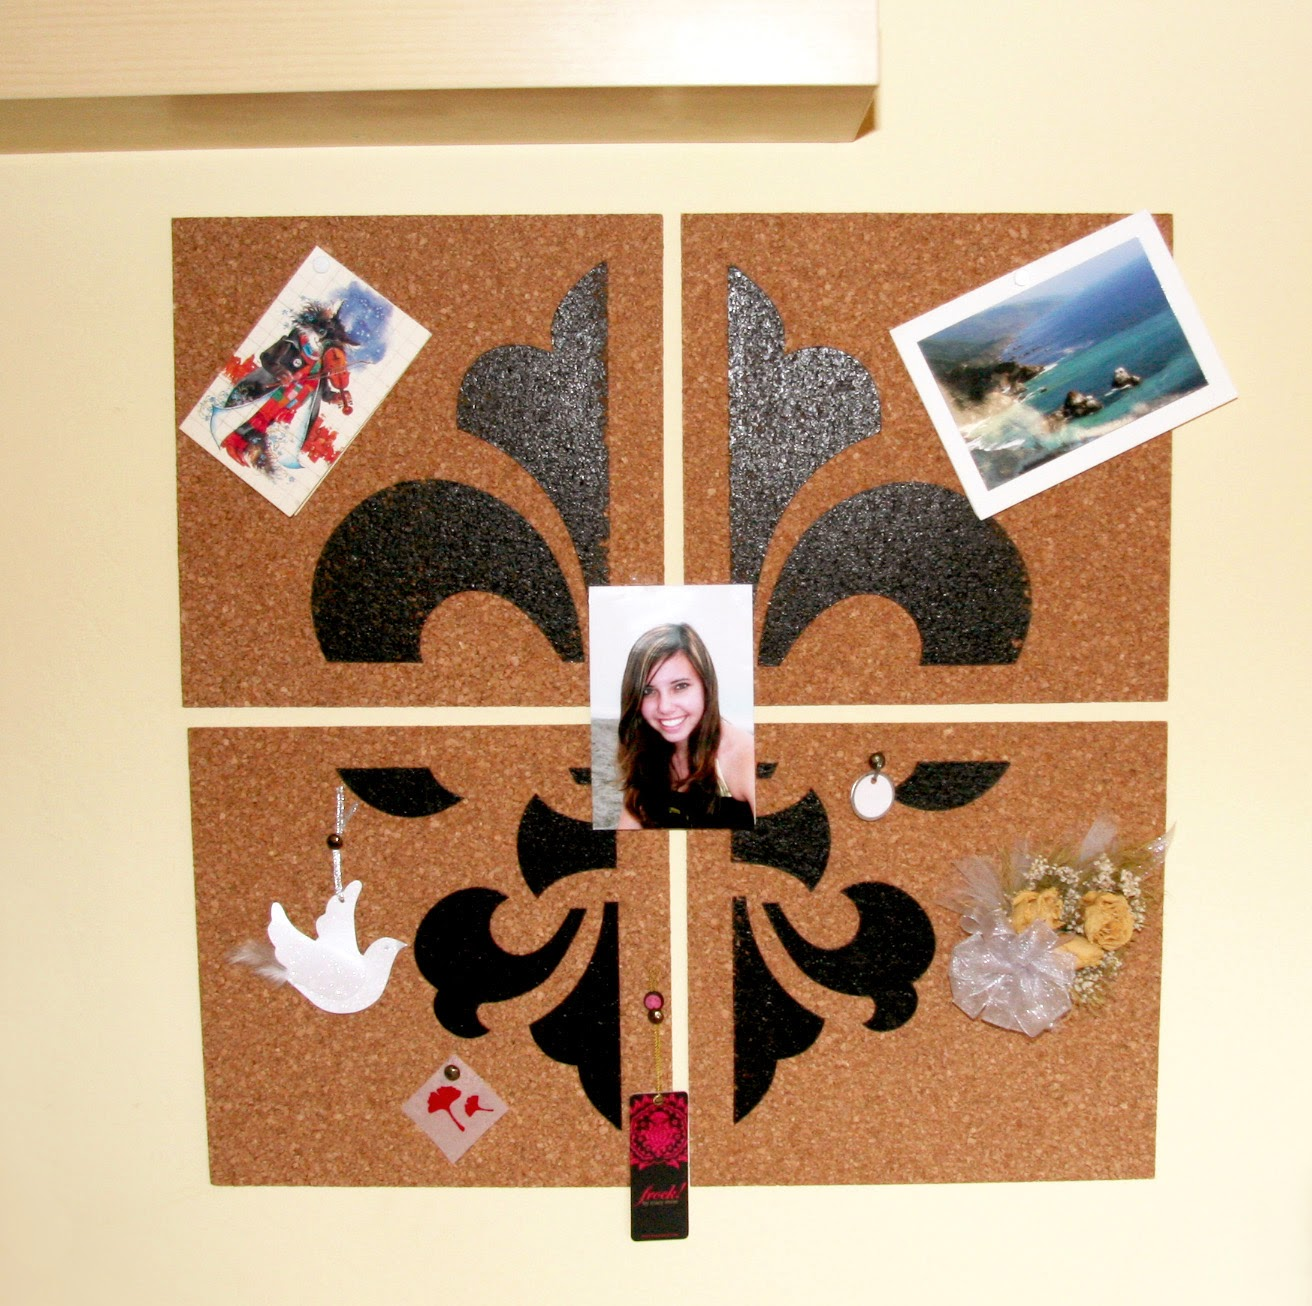 Piece of Art DIY Bulletin Board with Mementos